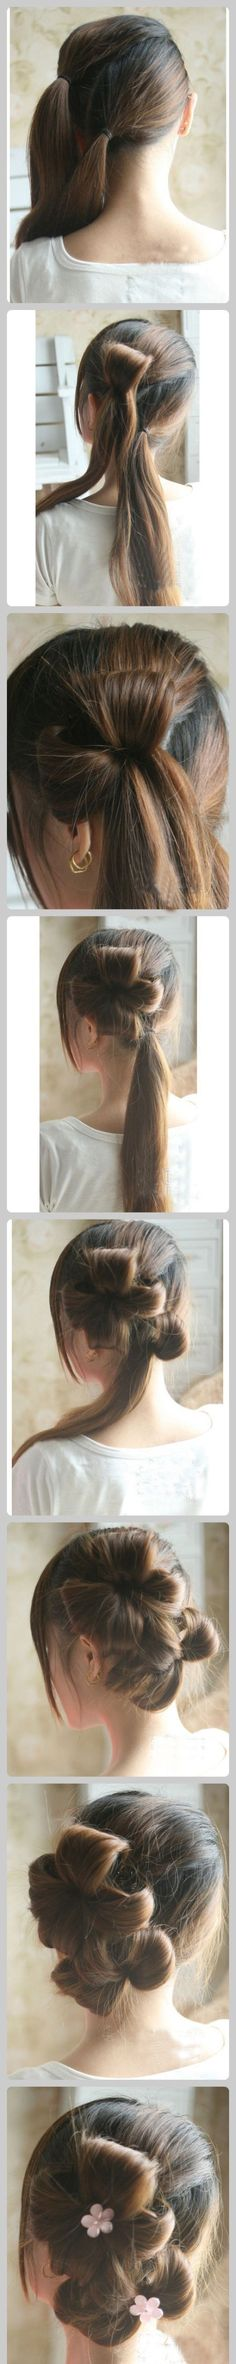 floral bun how to....